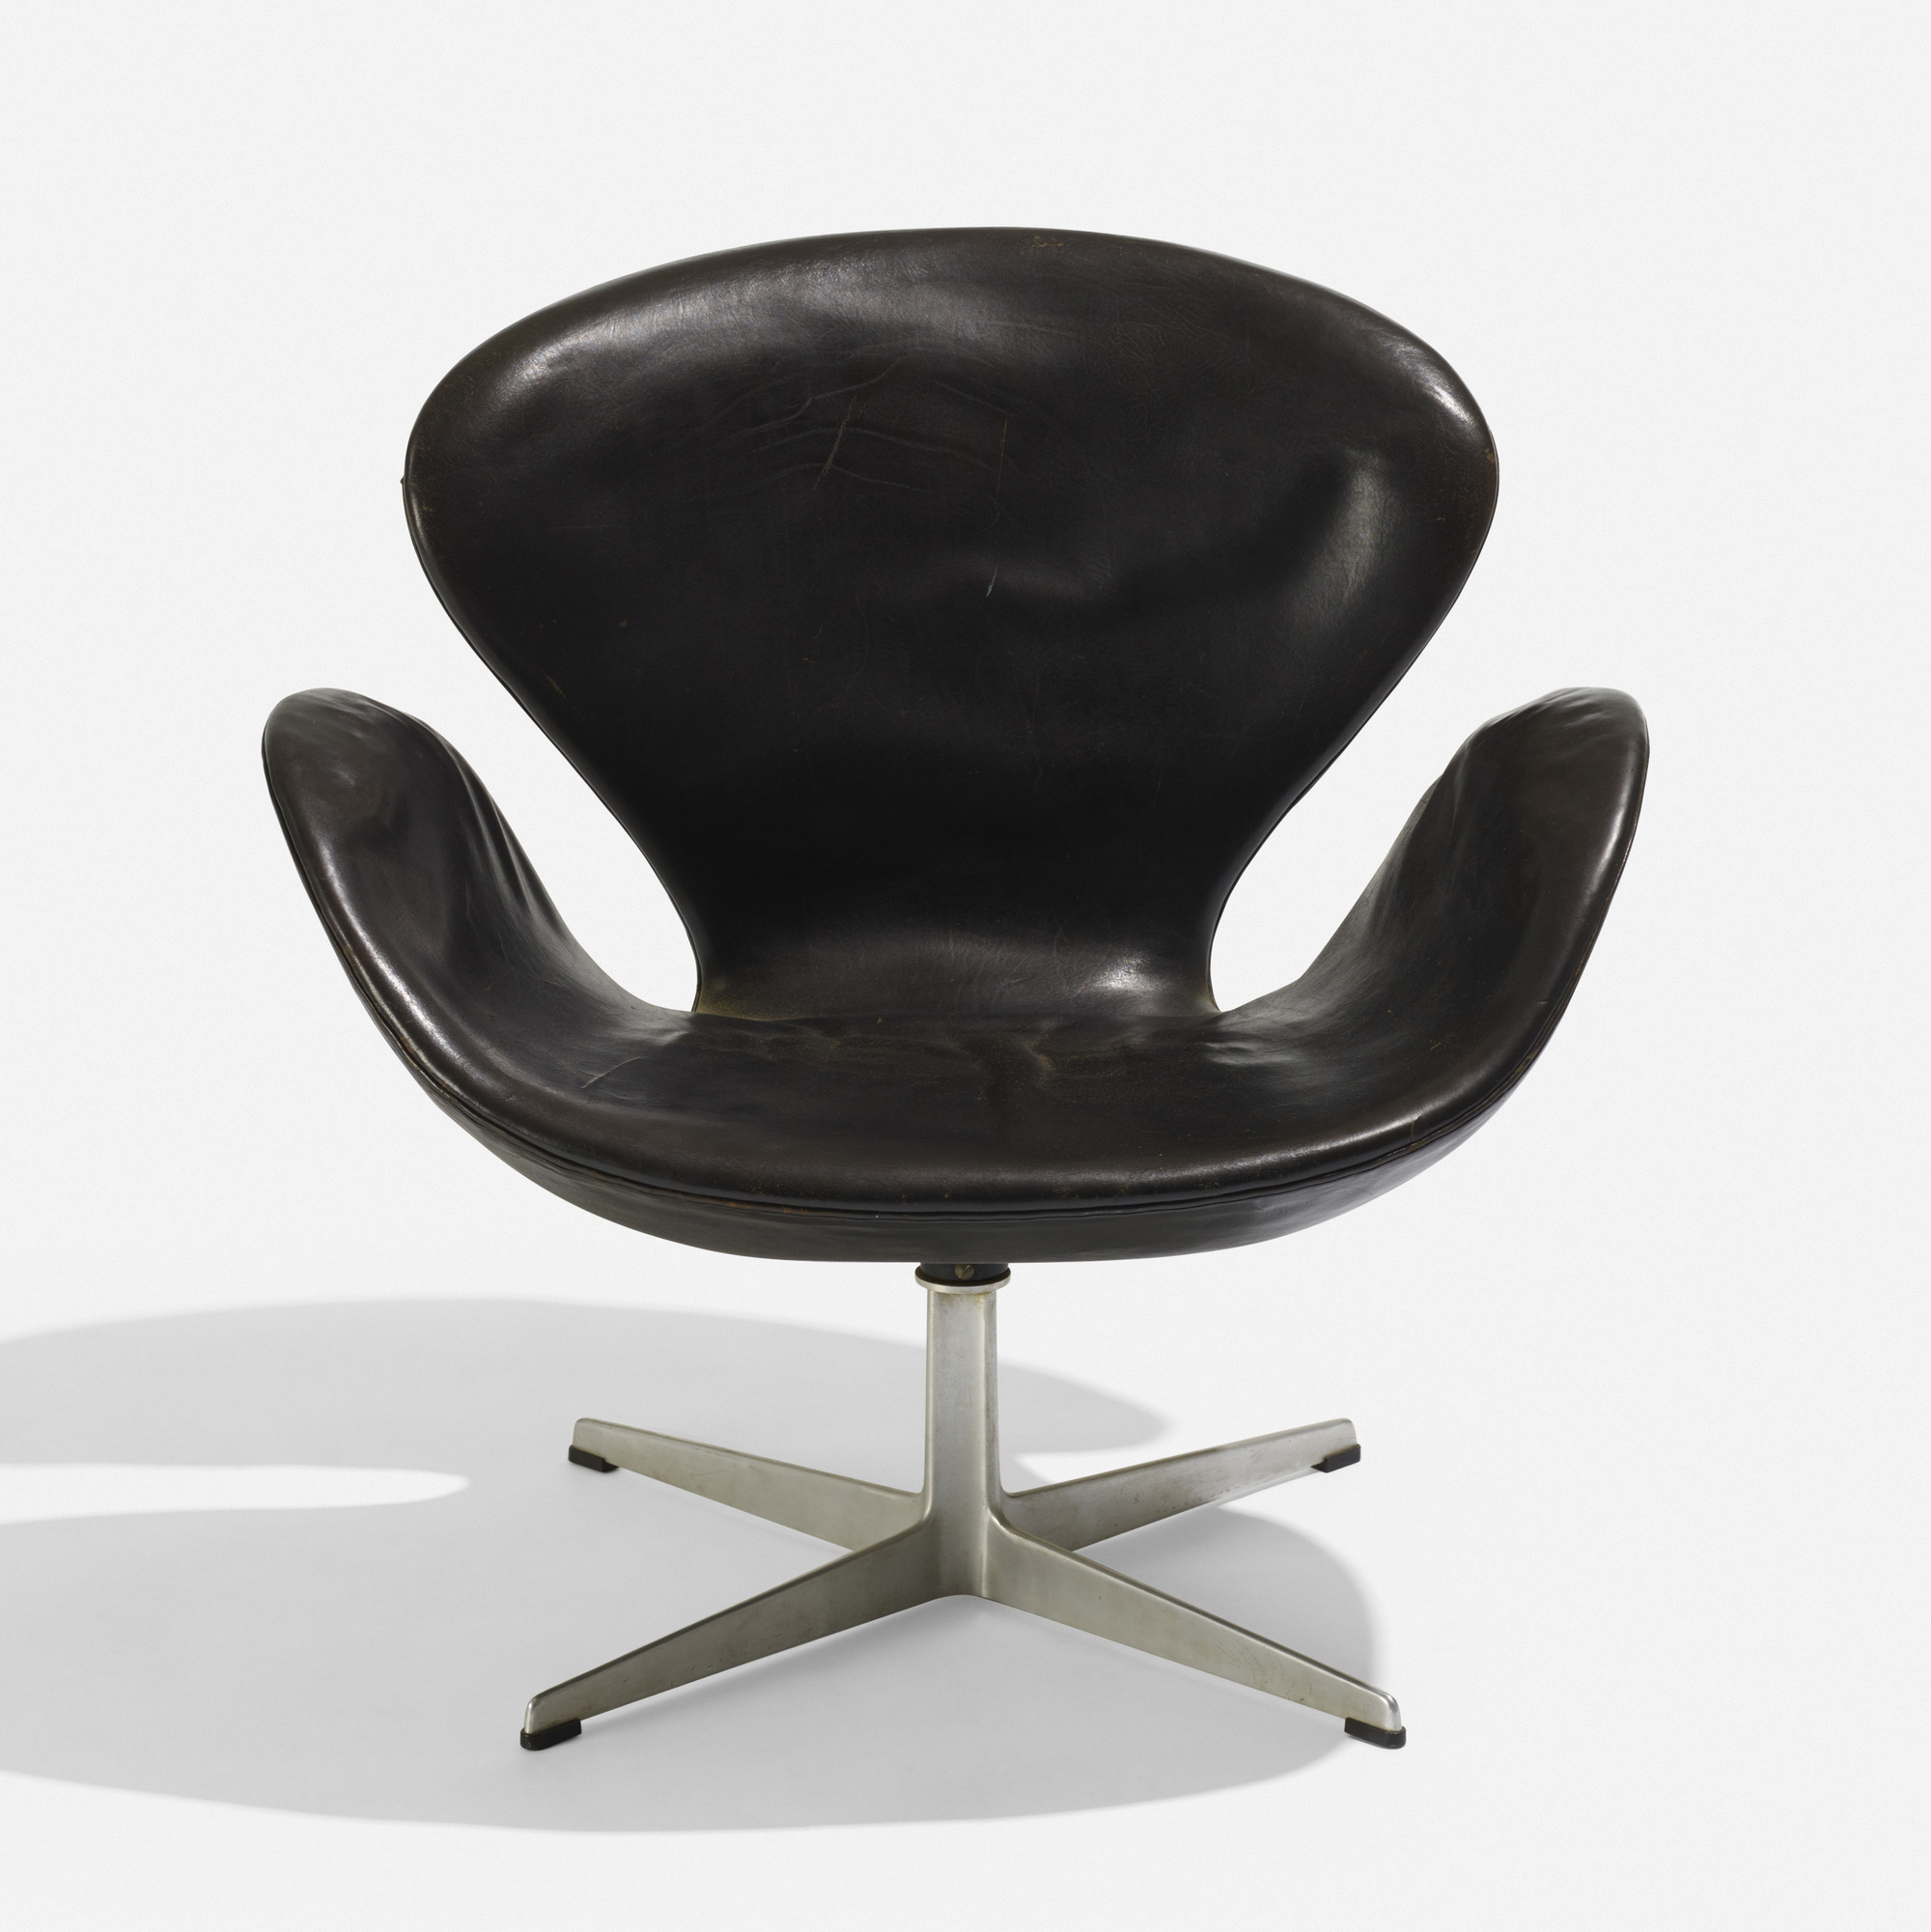 Arne Jacobsen Swan Chair 193: Arne Jacobsen, Swan Chair, Model 3320